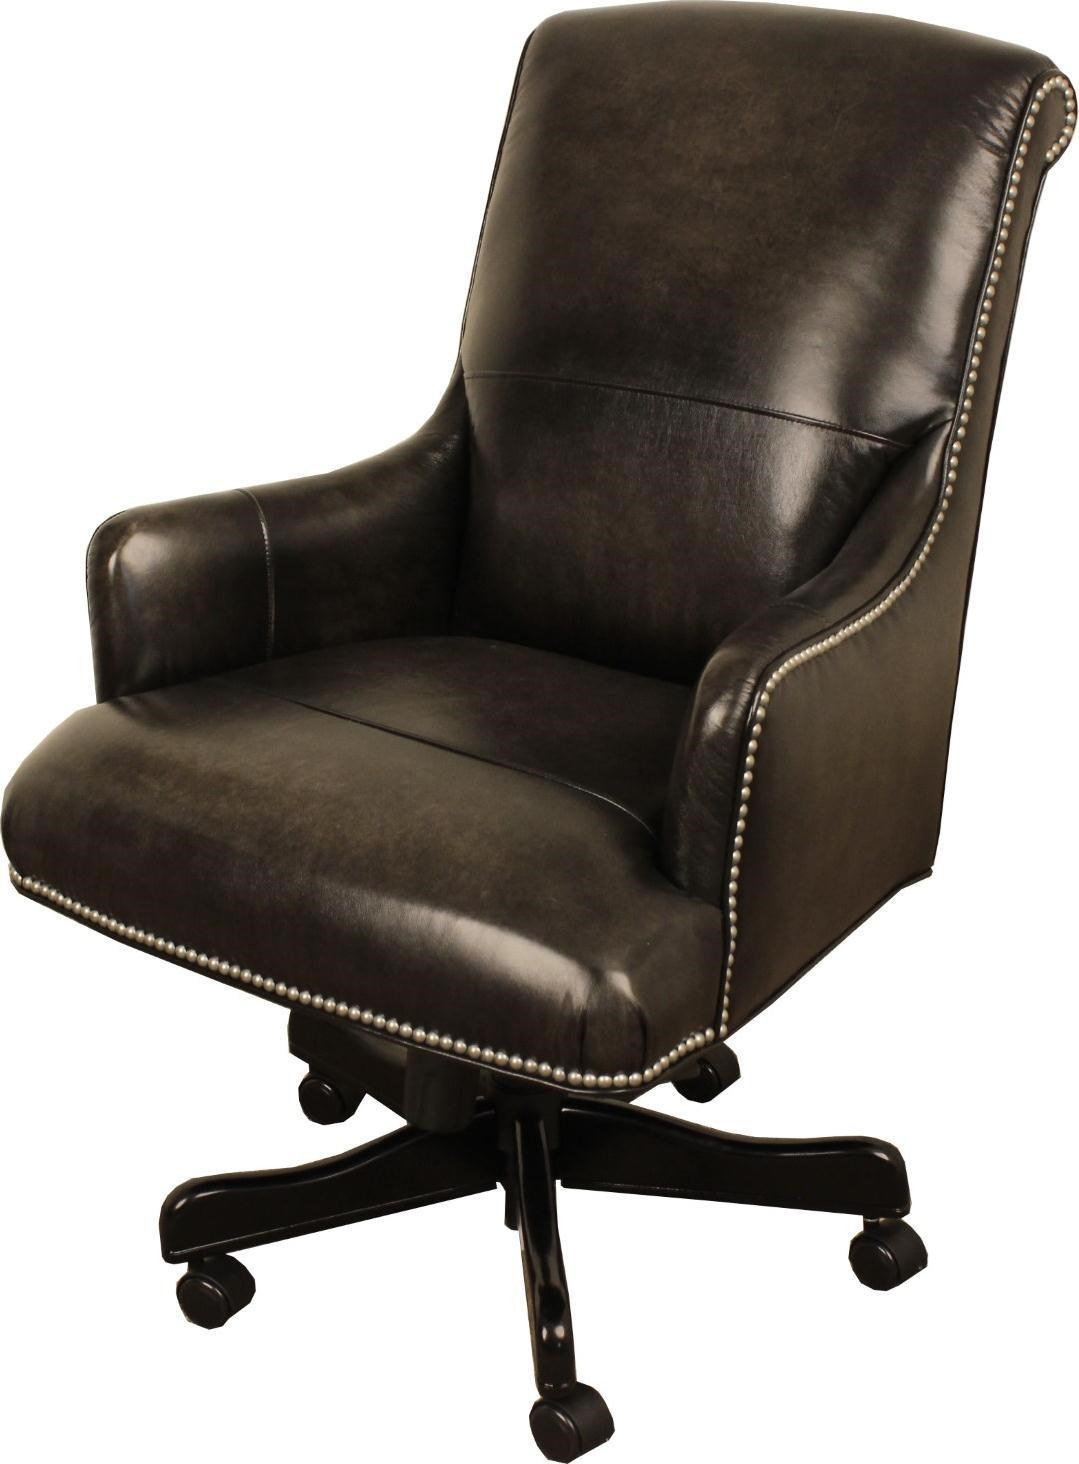 Morris Home Furnishings Bellmont Leather Bellmont Leather Desk Chair - Item Number: 744692626